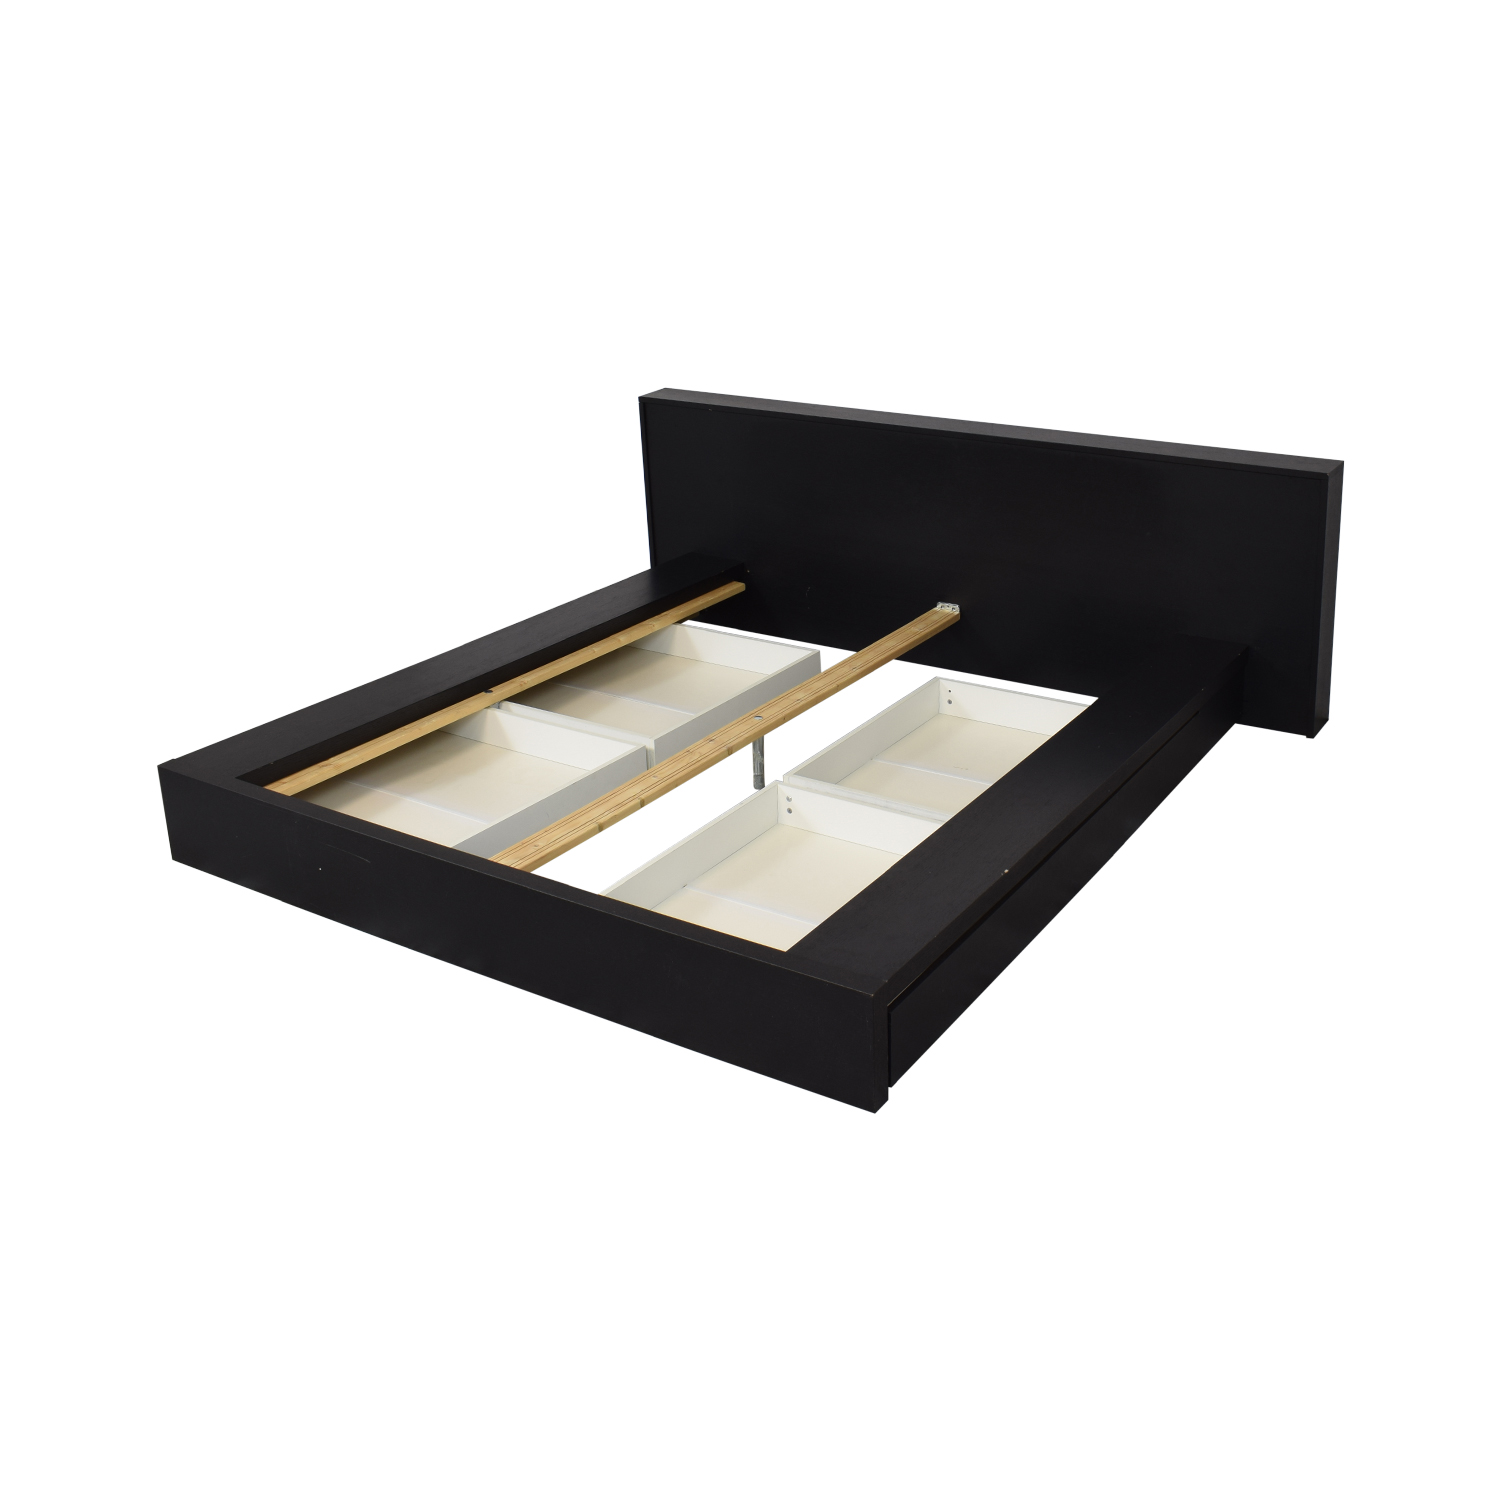 BoConcept BoConcept Queen Bed with Storage dimensions